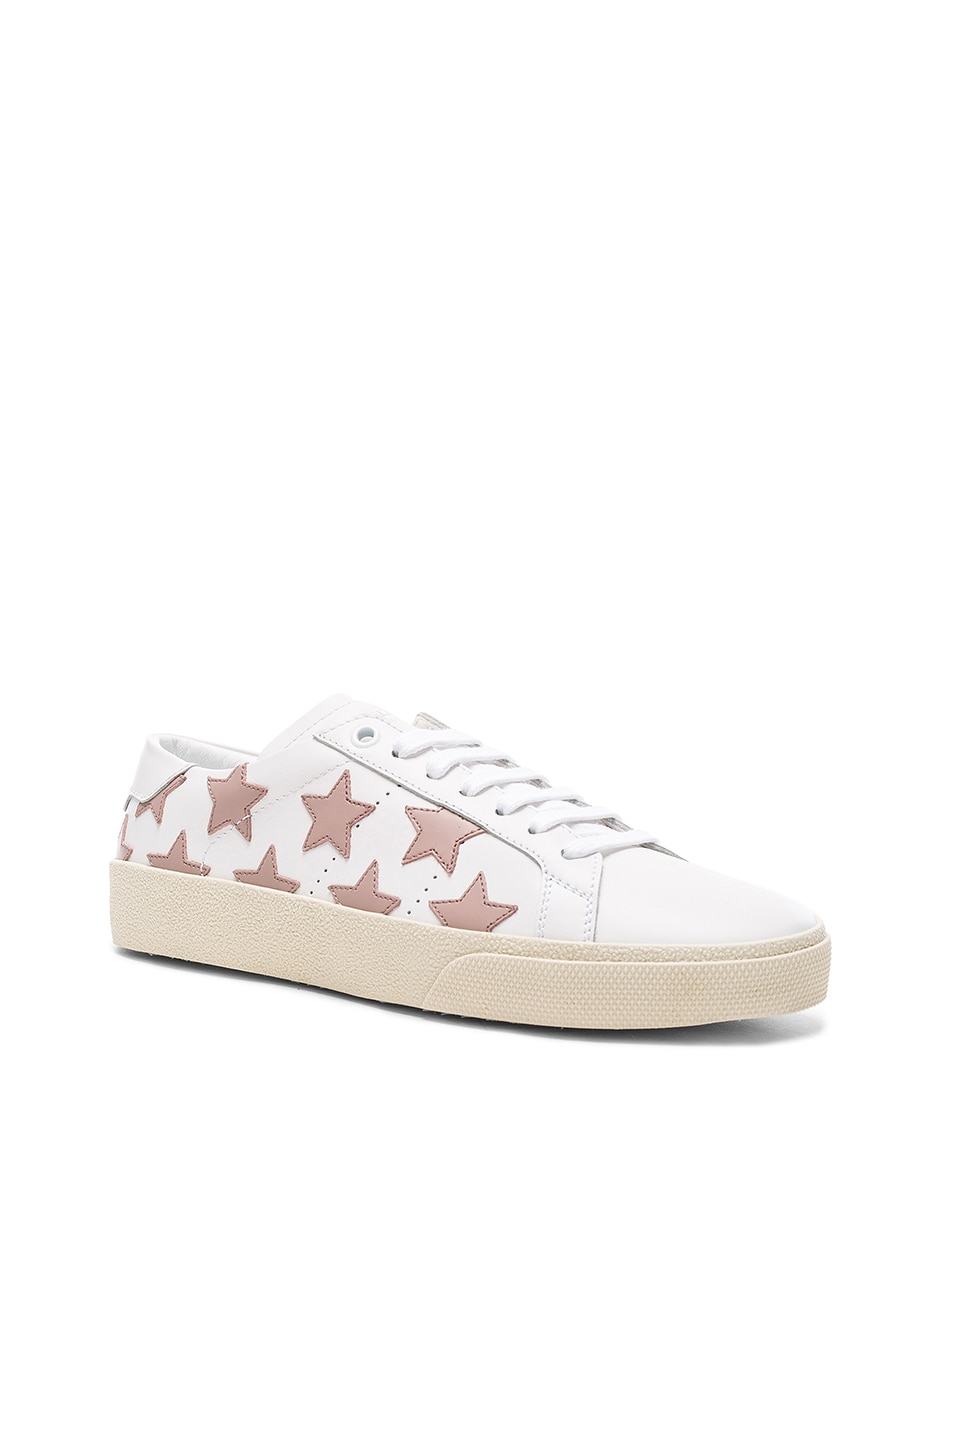 Image 2 of Saint Laurent Leather Court Classic Star Sneakers in Off White & Rose Antic